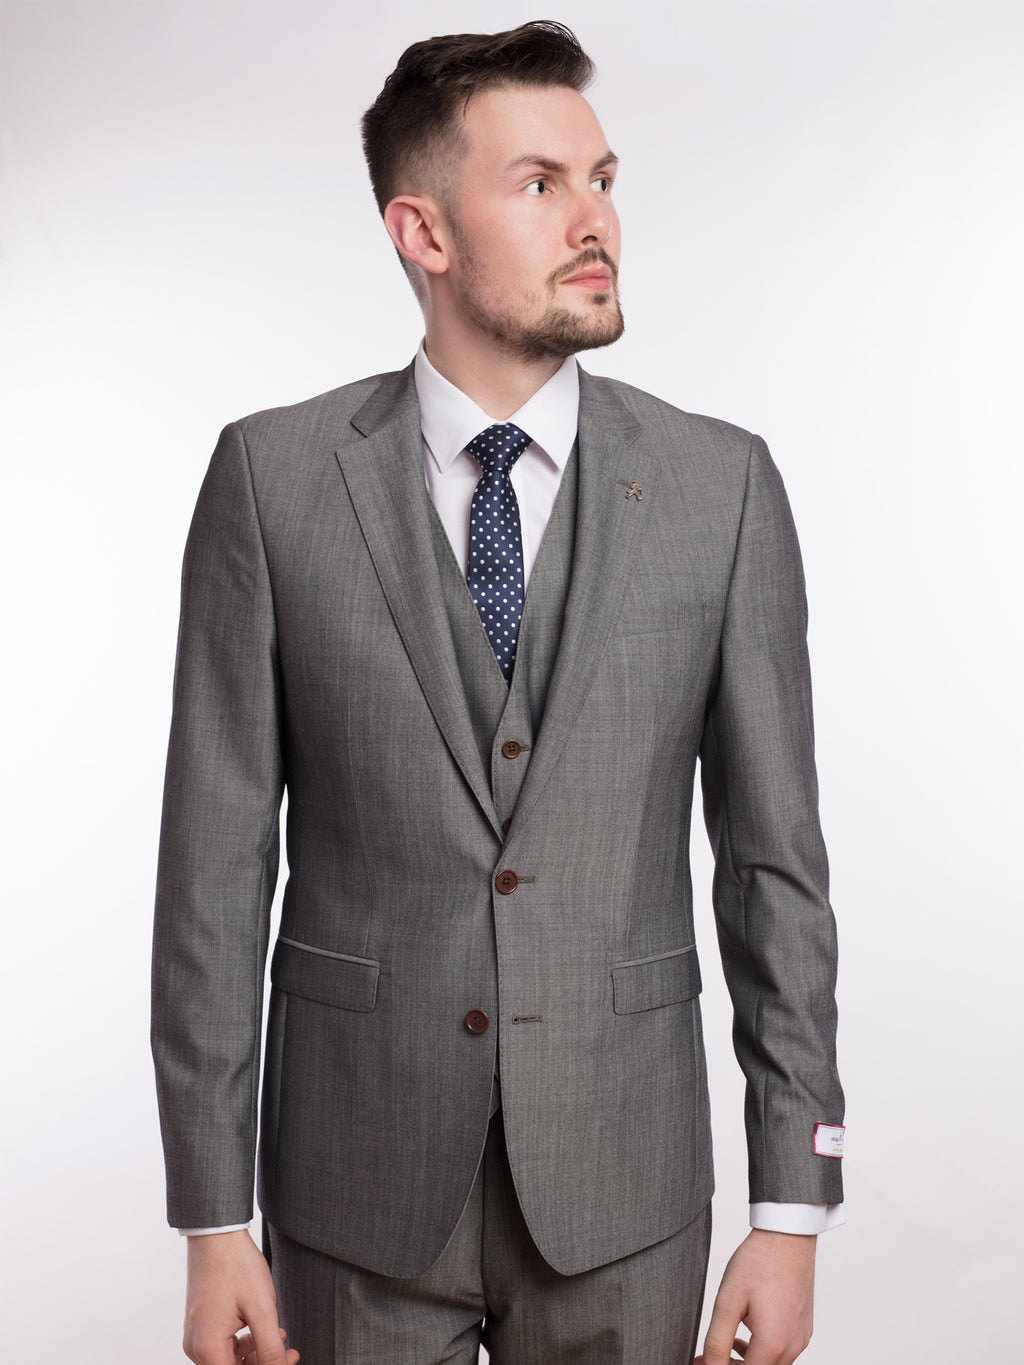 herbie frogg grey suit